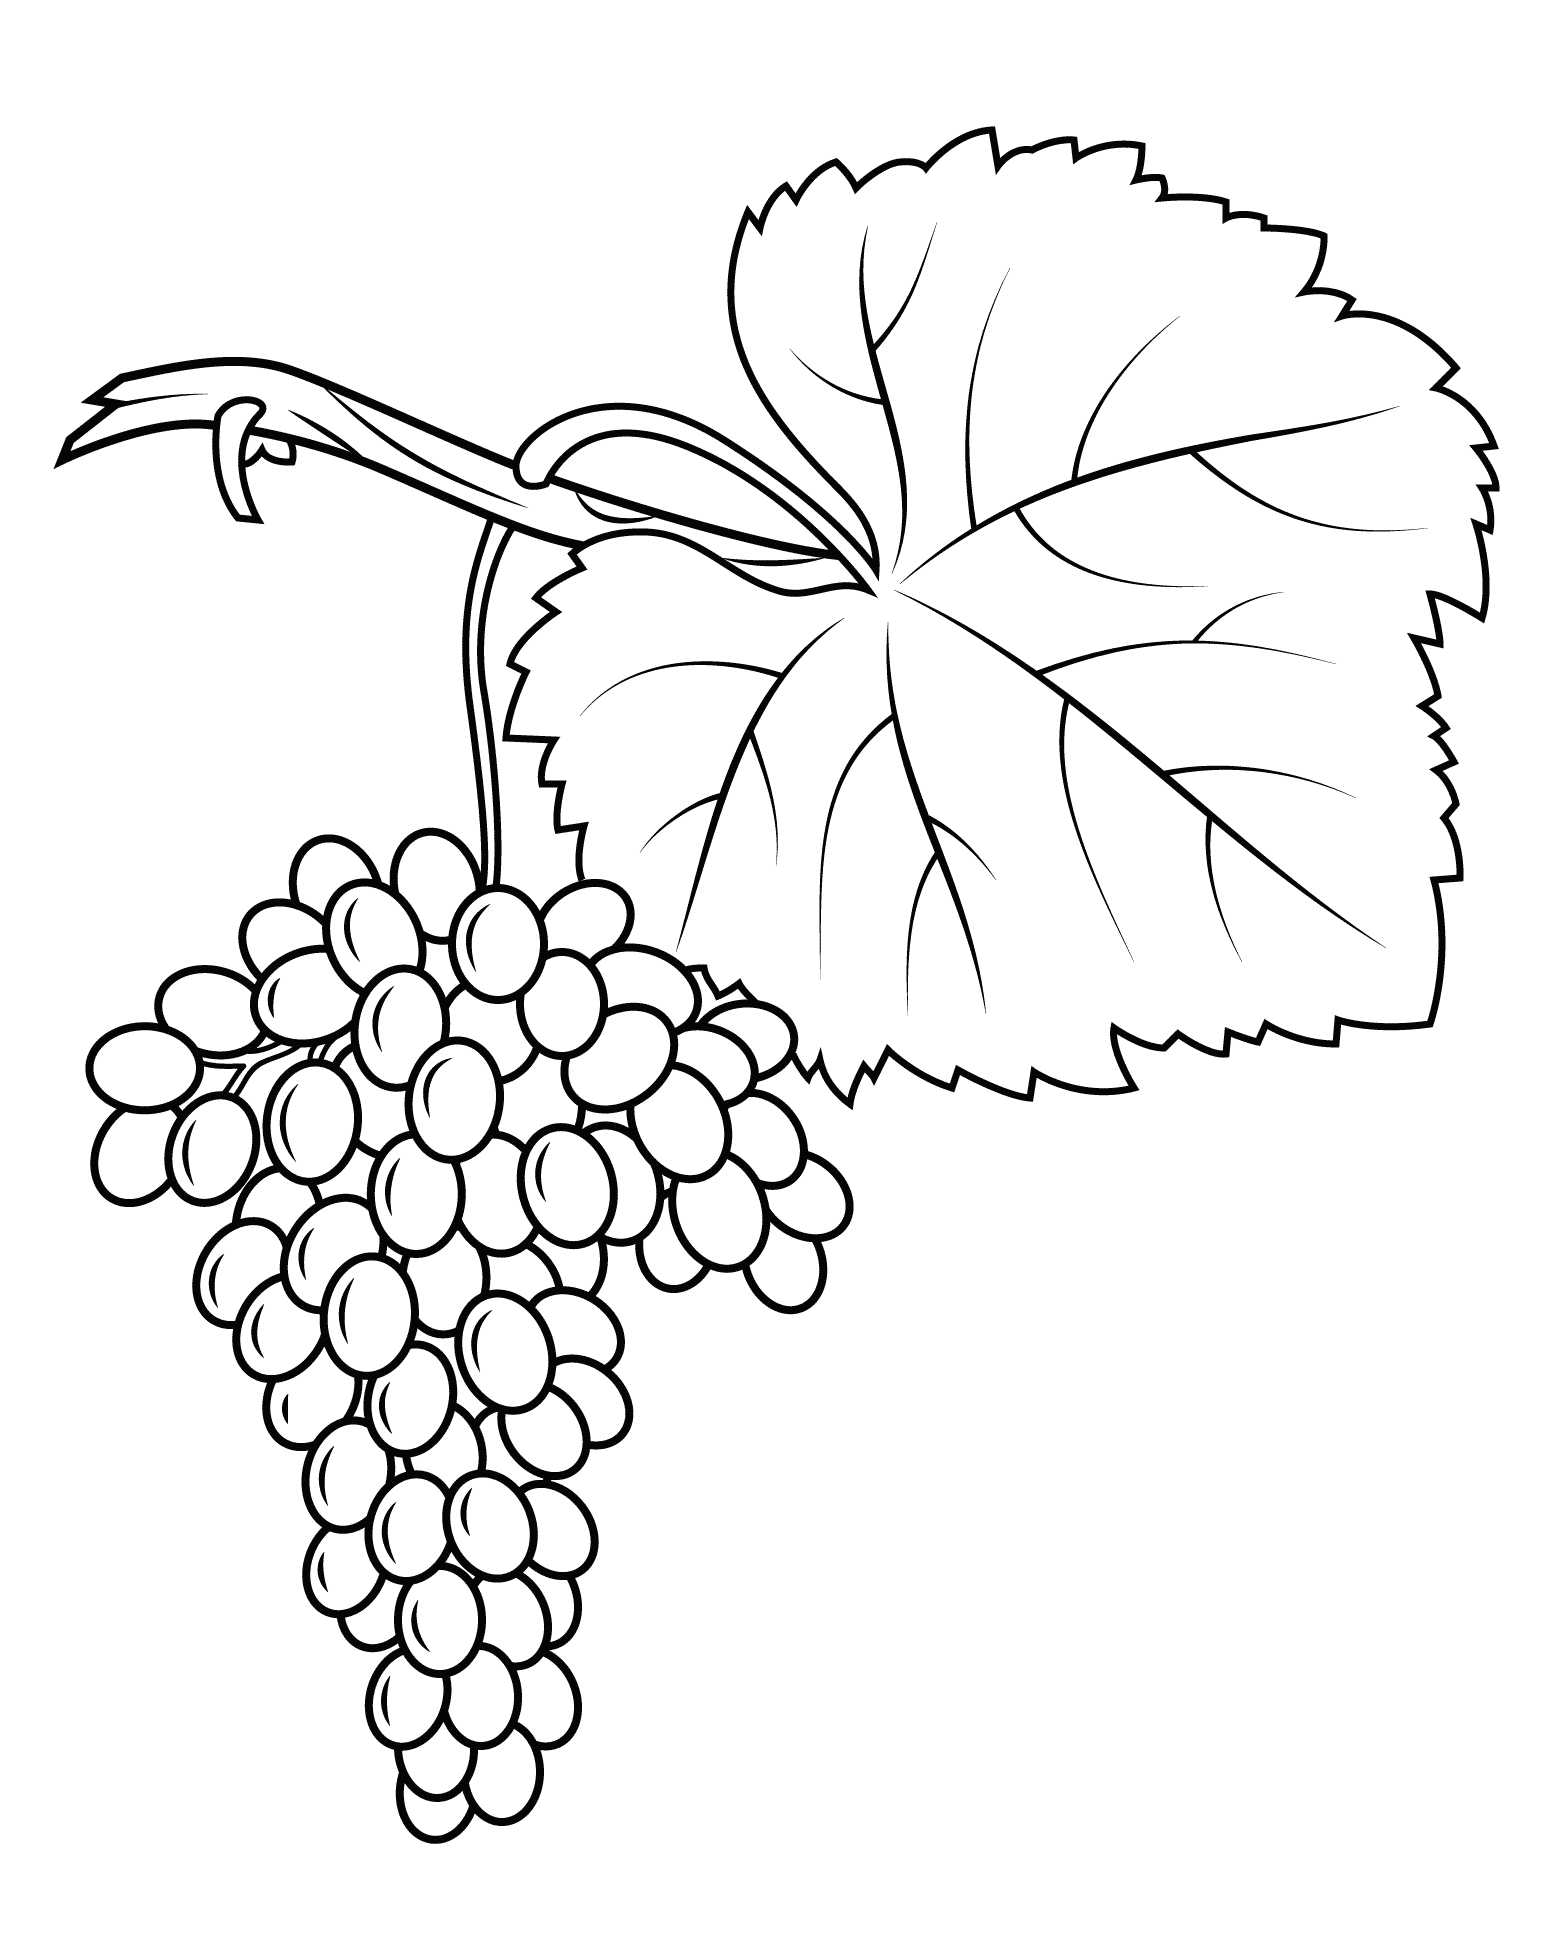 coloring picture of grapes top 25 free printable lovely grapes coloring pages online picture coloring grapes of